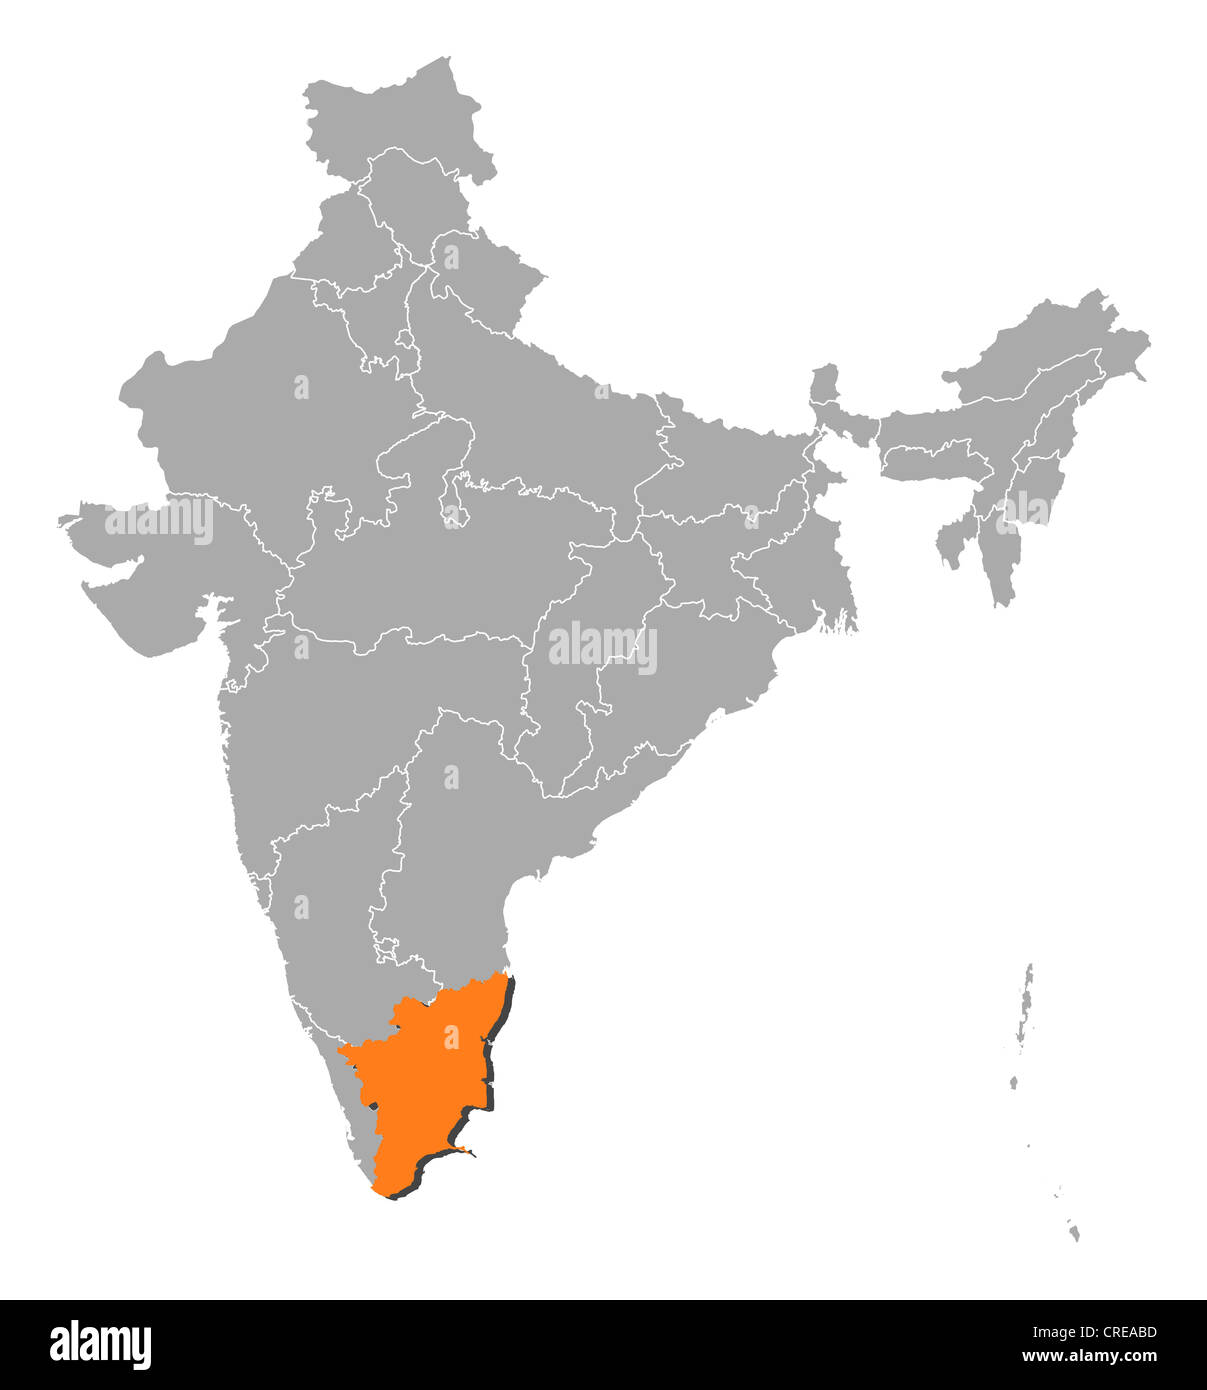 Political map of india with the several states where tamil nadu is political map of india with the several states where tamil nadu is highlighted gumiabroncs Image collections